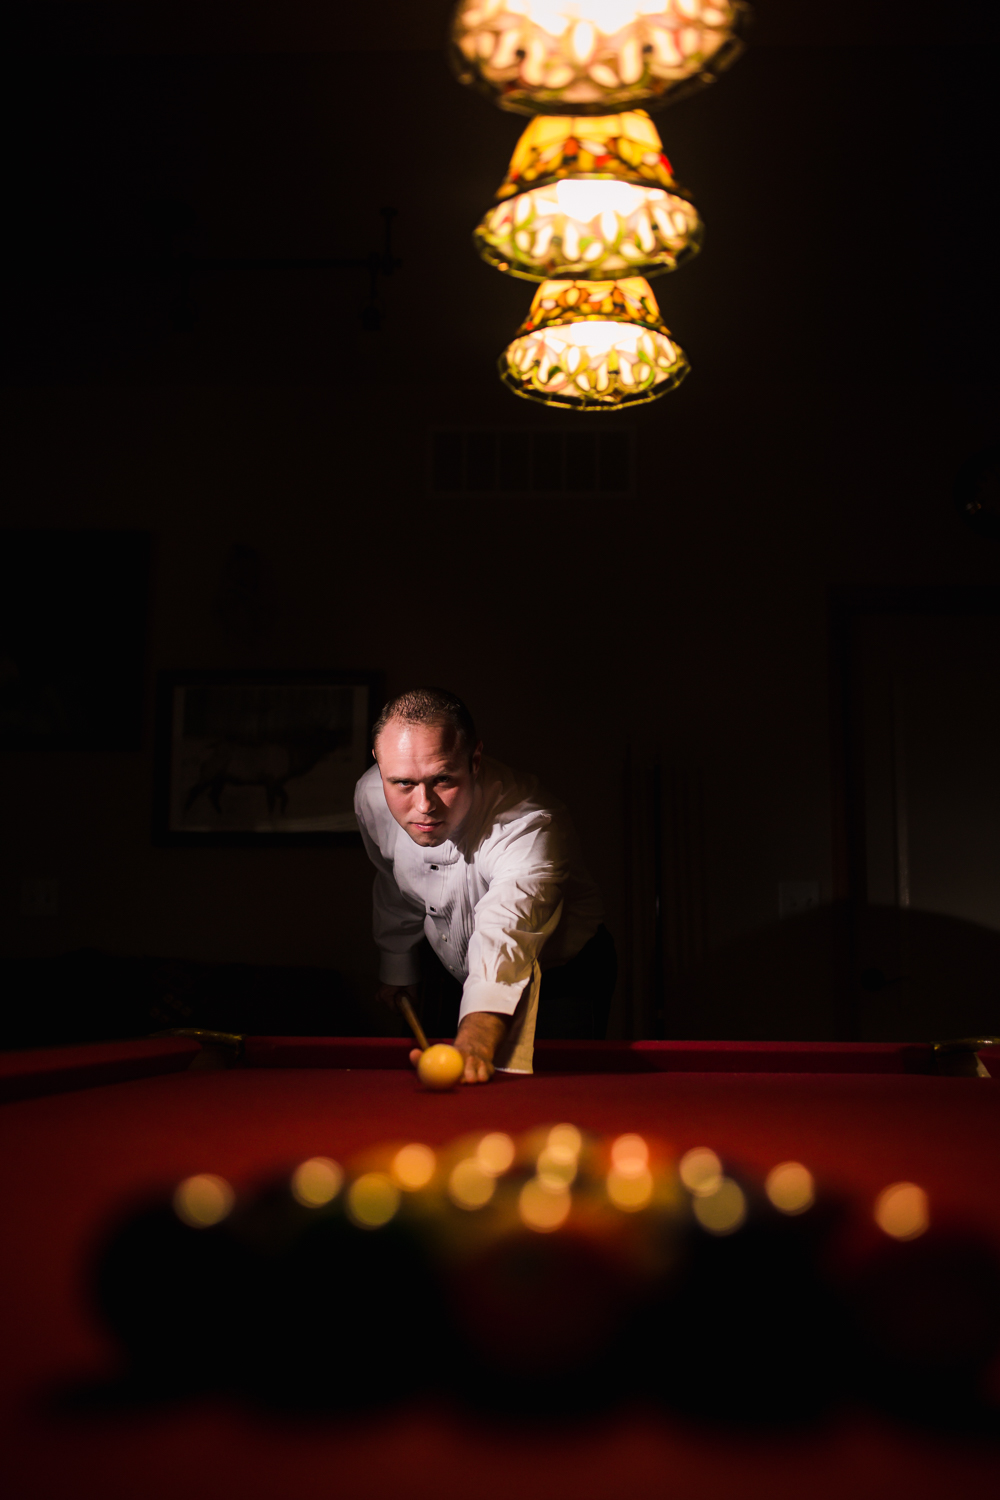 Groom playing pool by JMGant Photography.